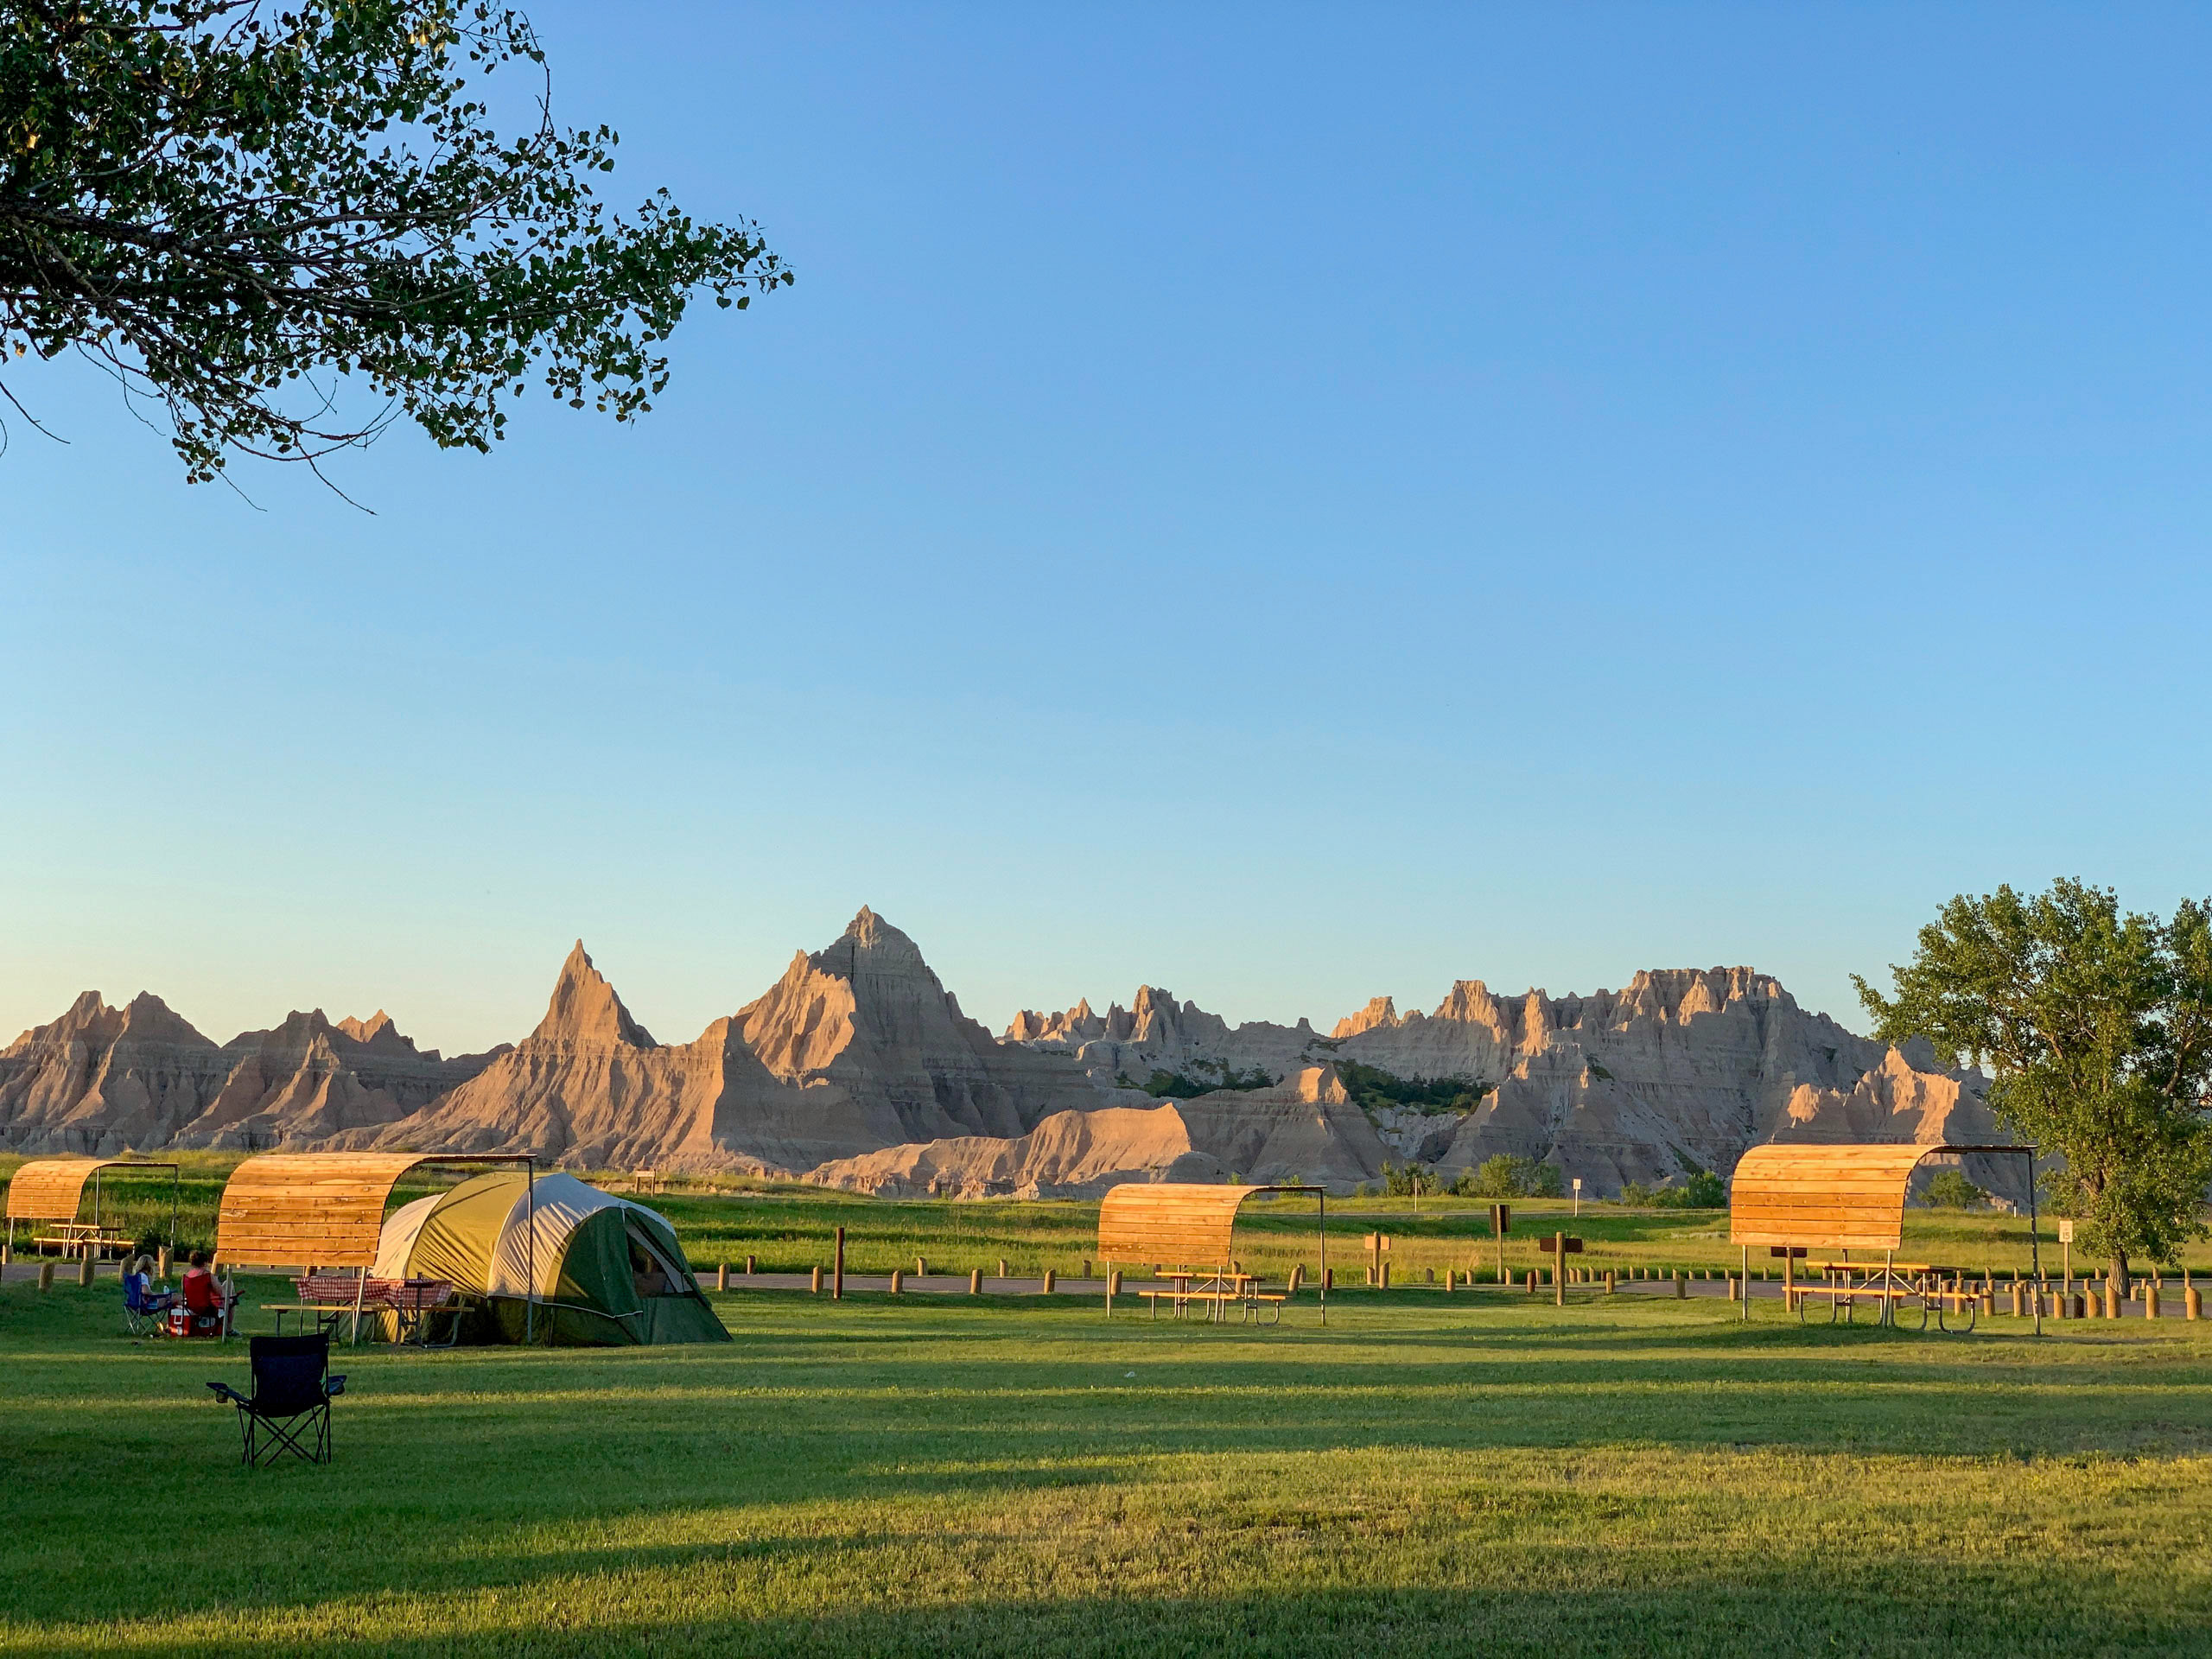 Badlands campground